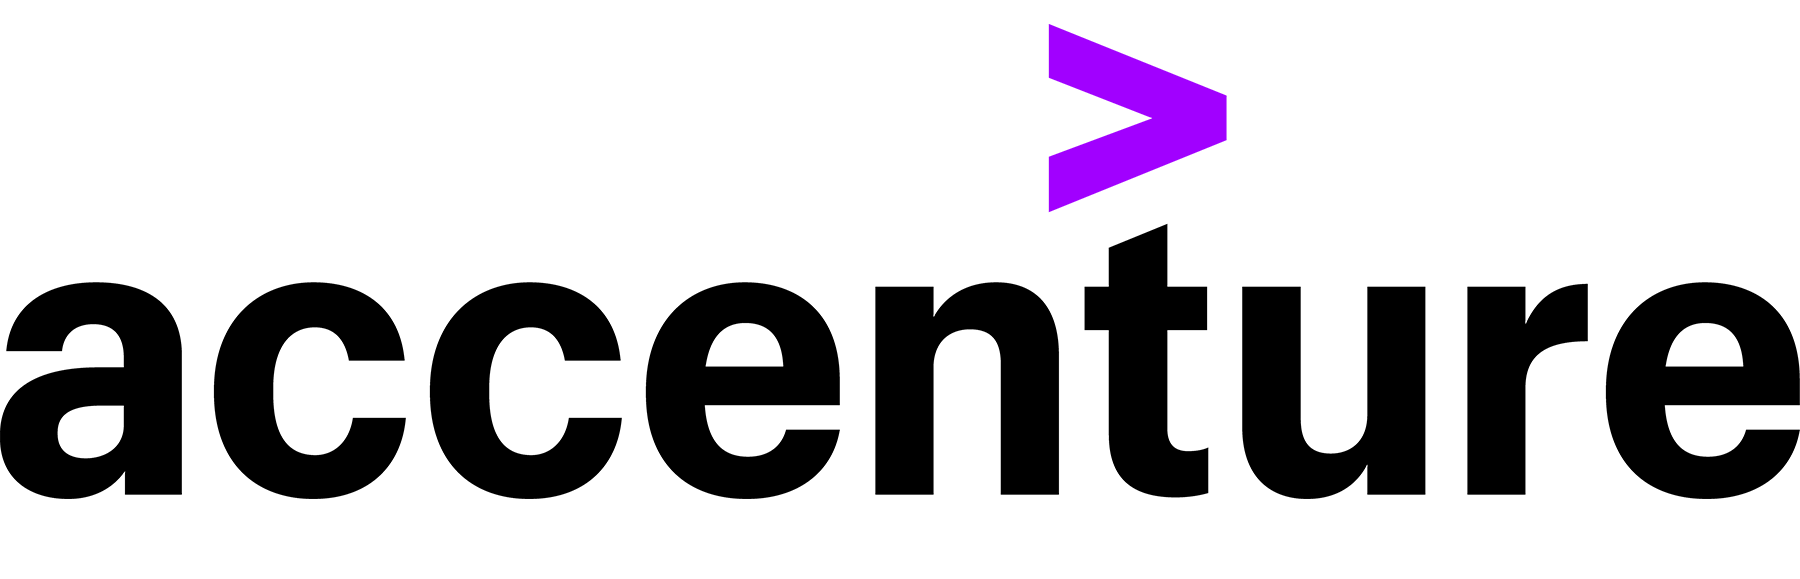 Accenture-logo-no-background